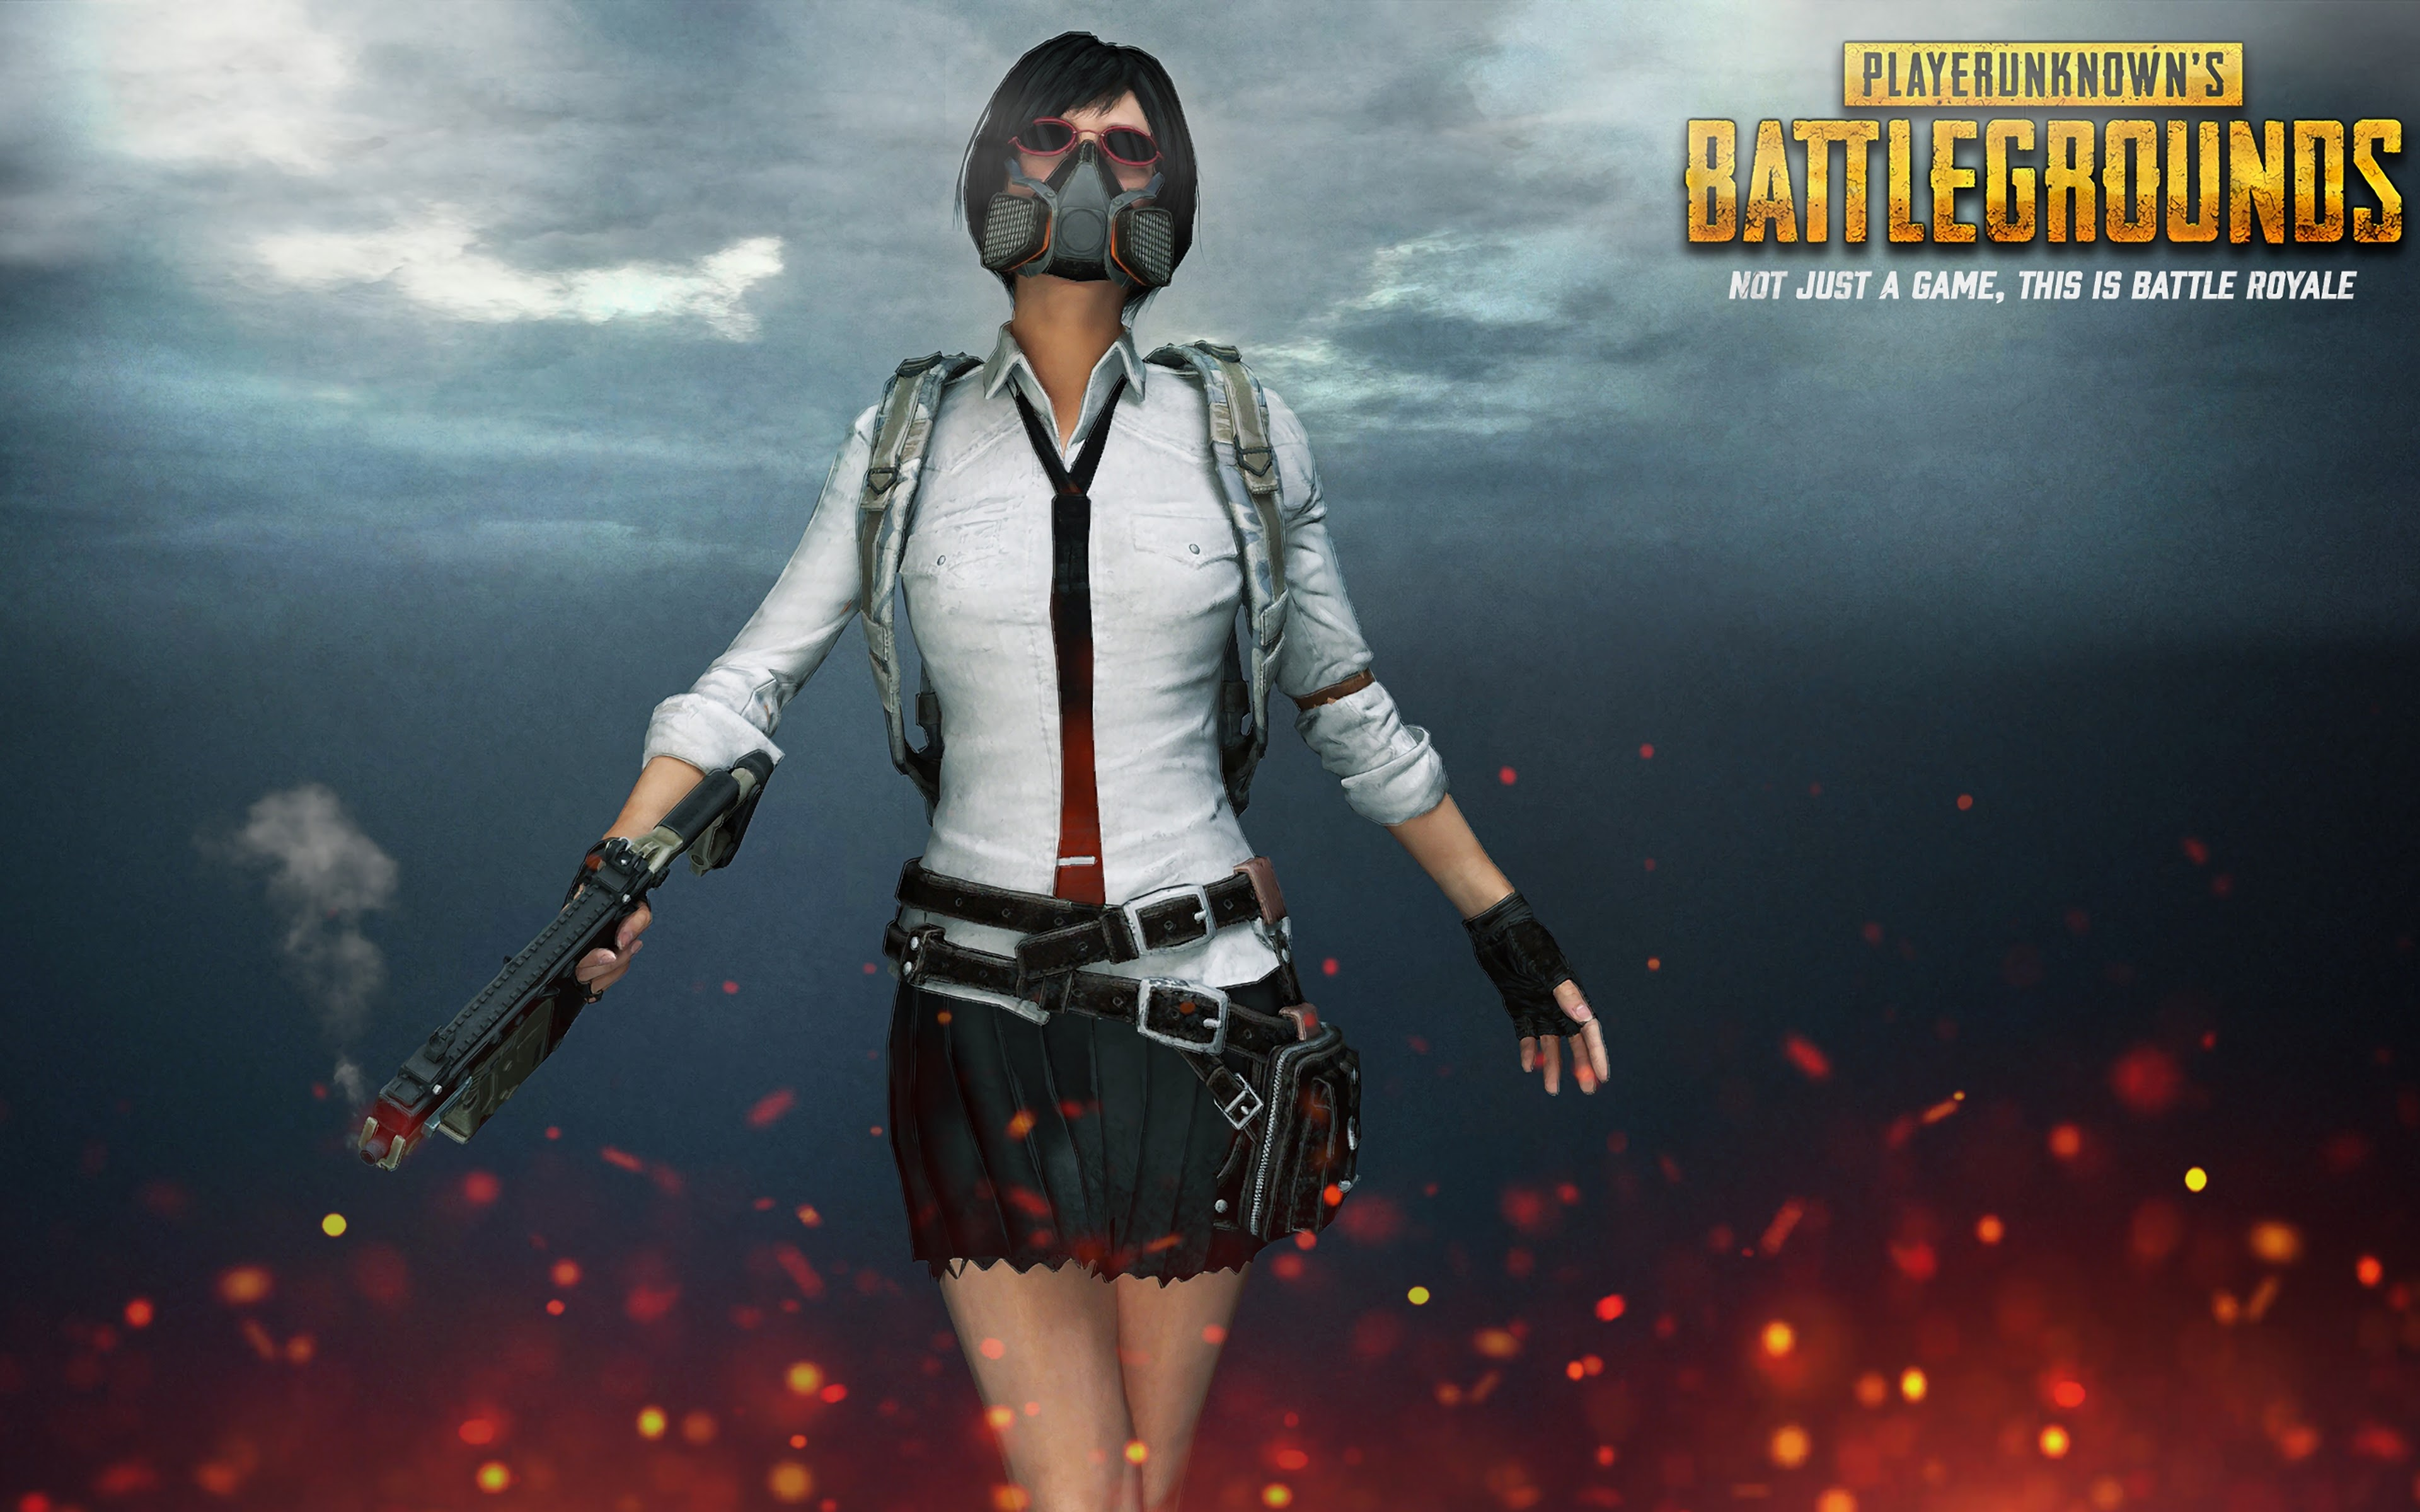 Pubg Girl Gas Mask Playerunknowns Battlegrounds 4k 30 Wallpaper